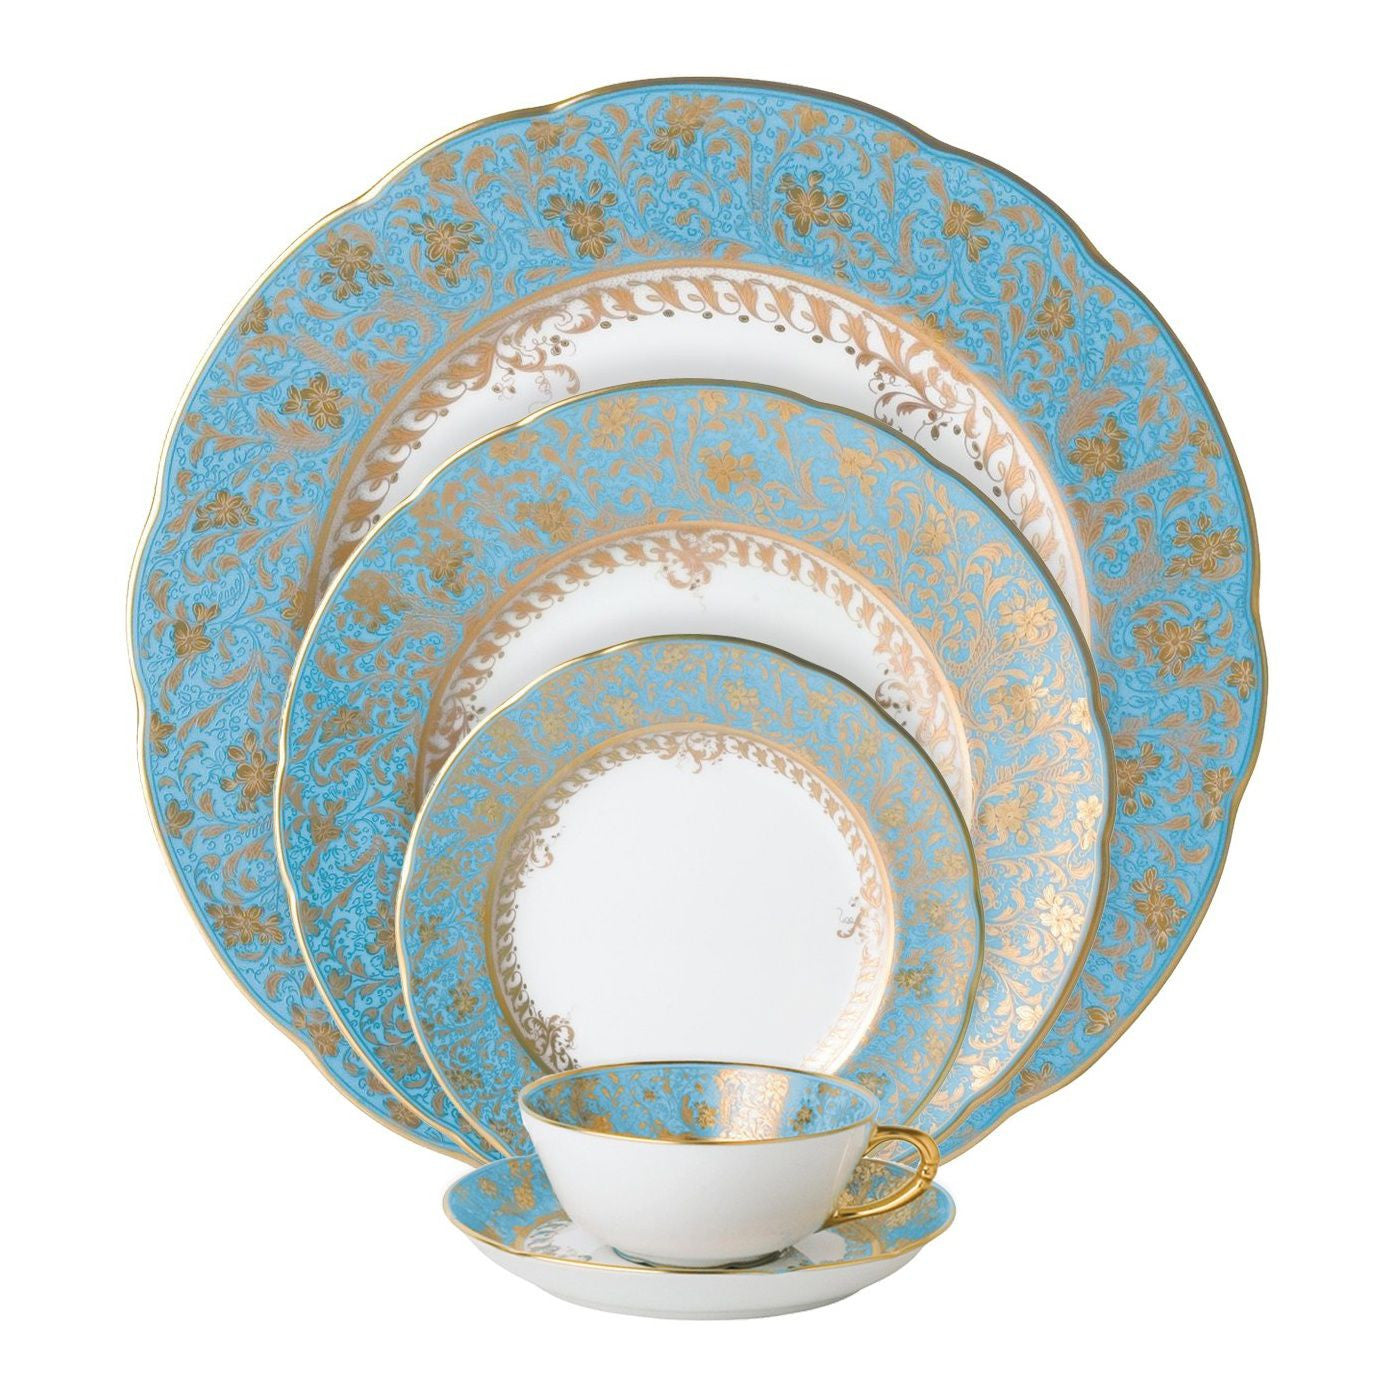 Eden Turquoise Bread and Butter Plate